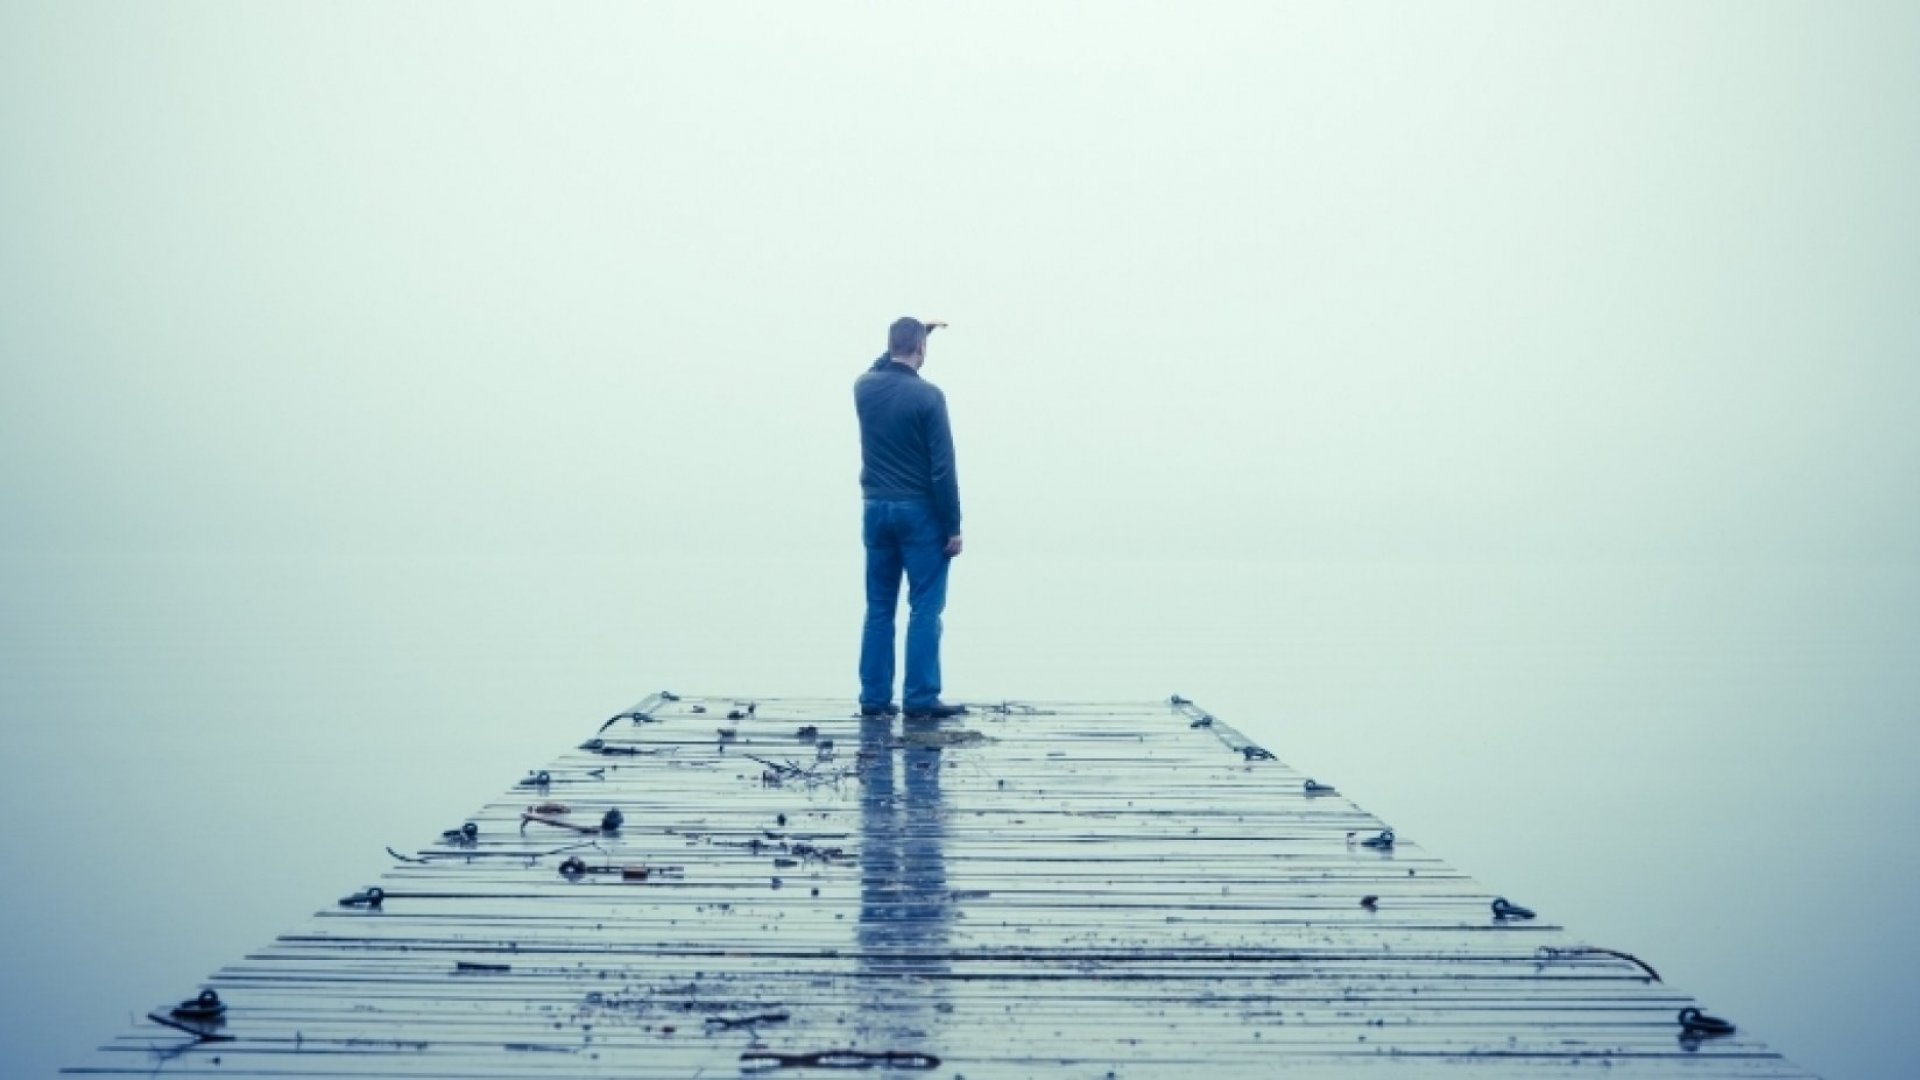 Career at a Dead End? Follow These 3 Steps to Rebound